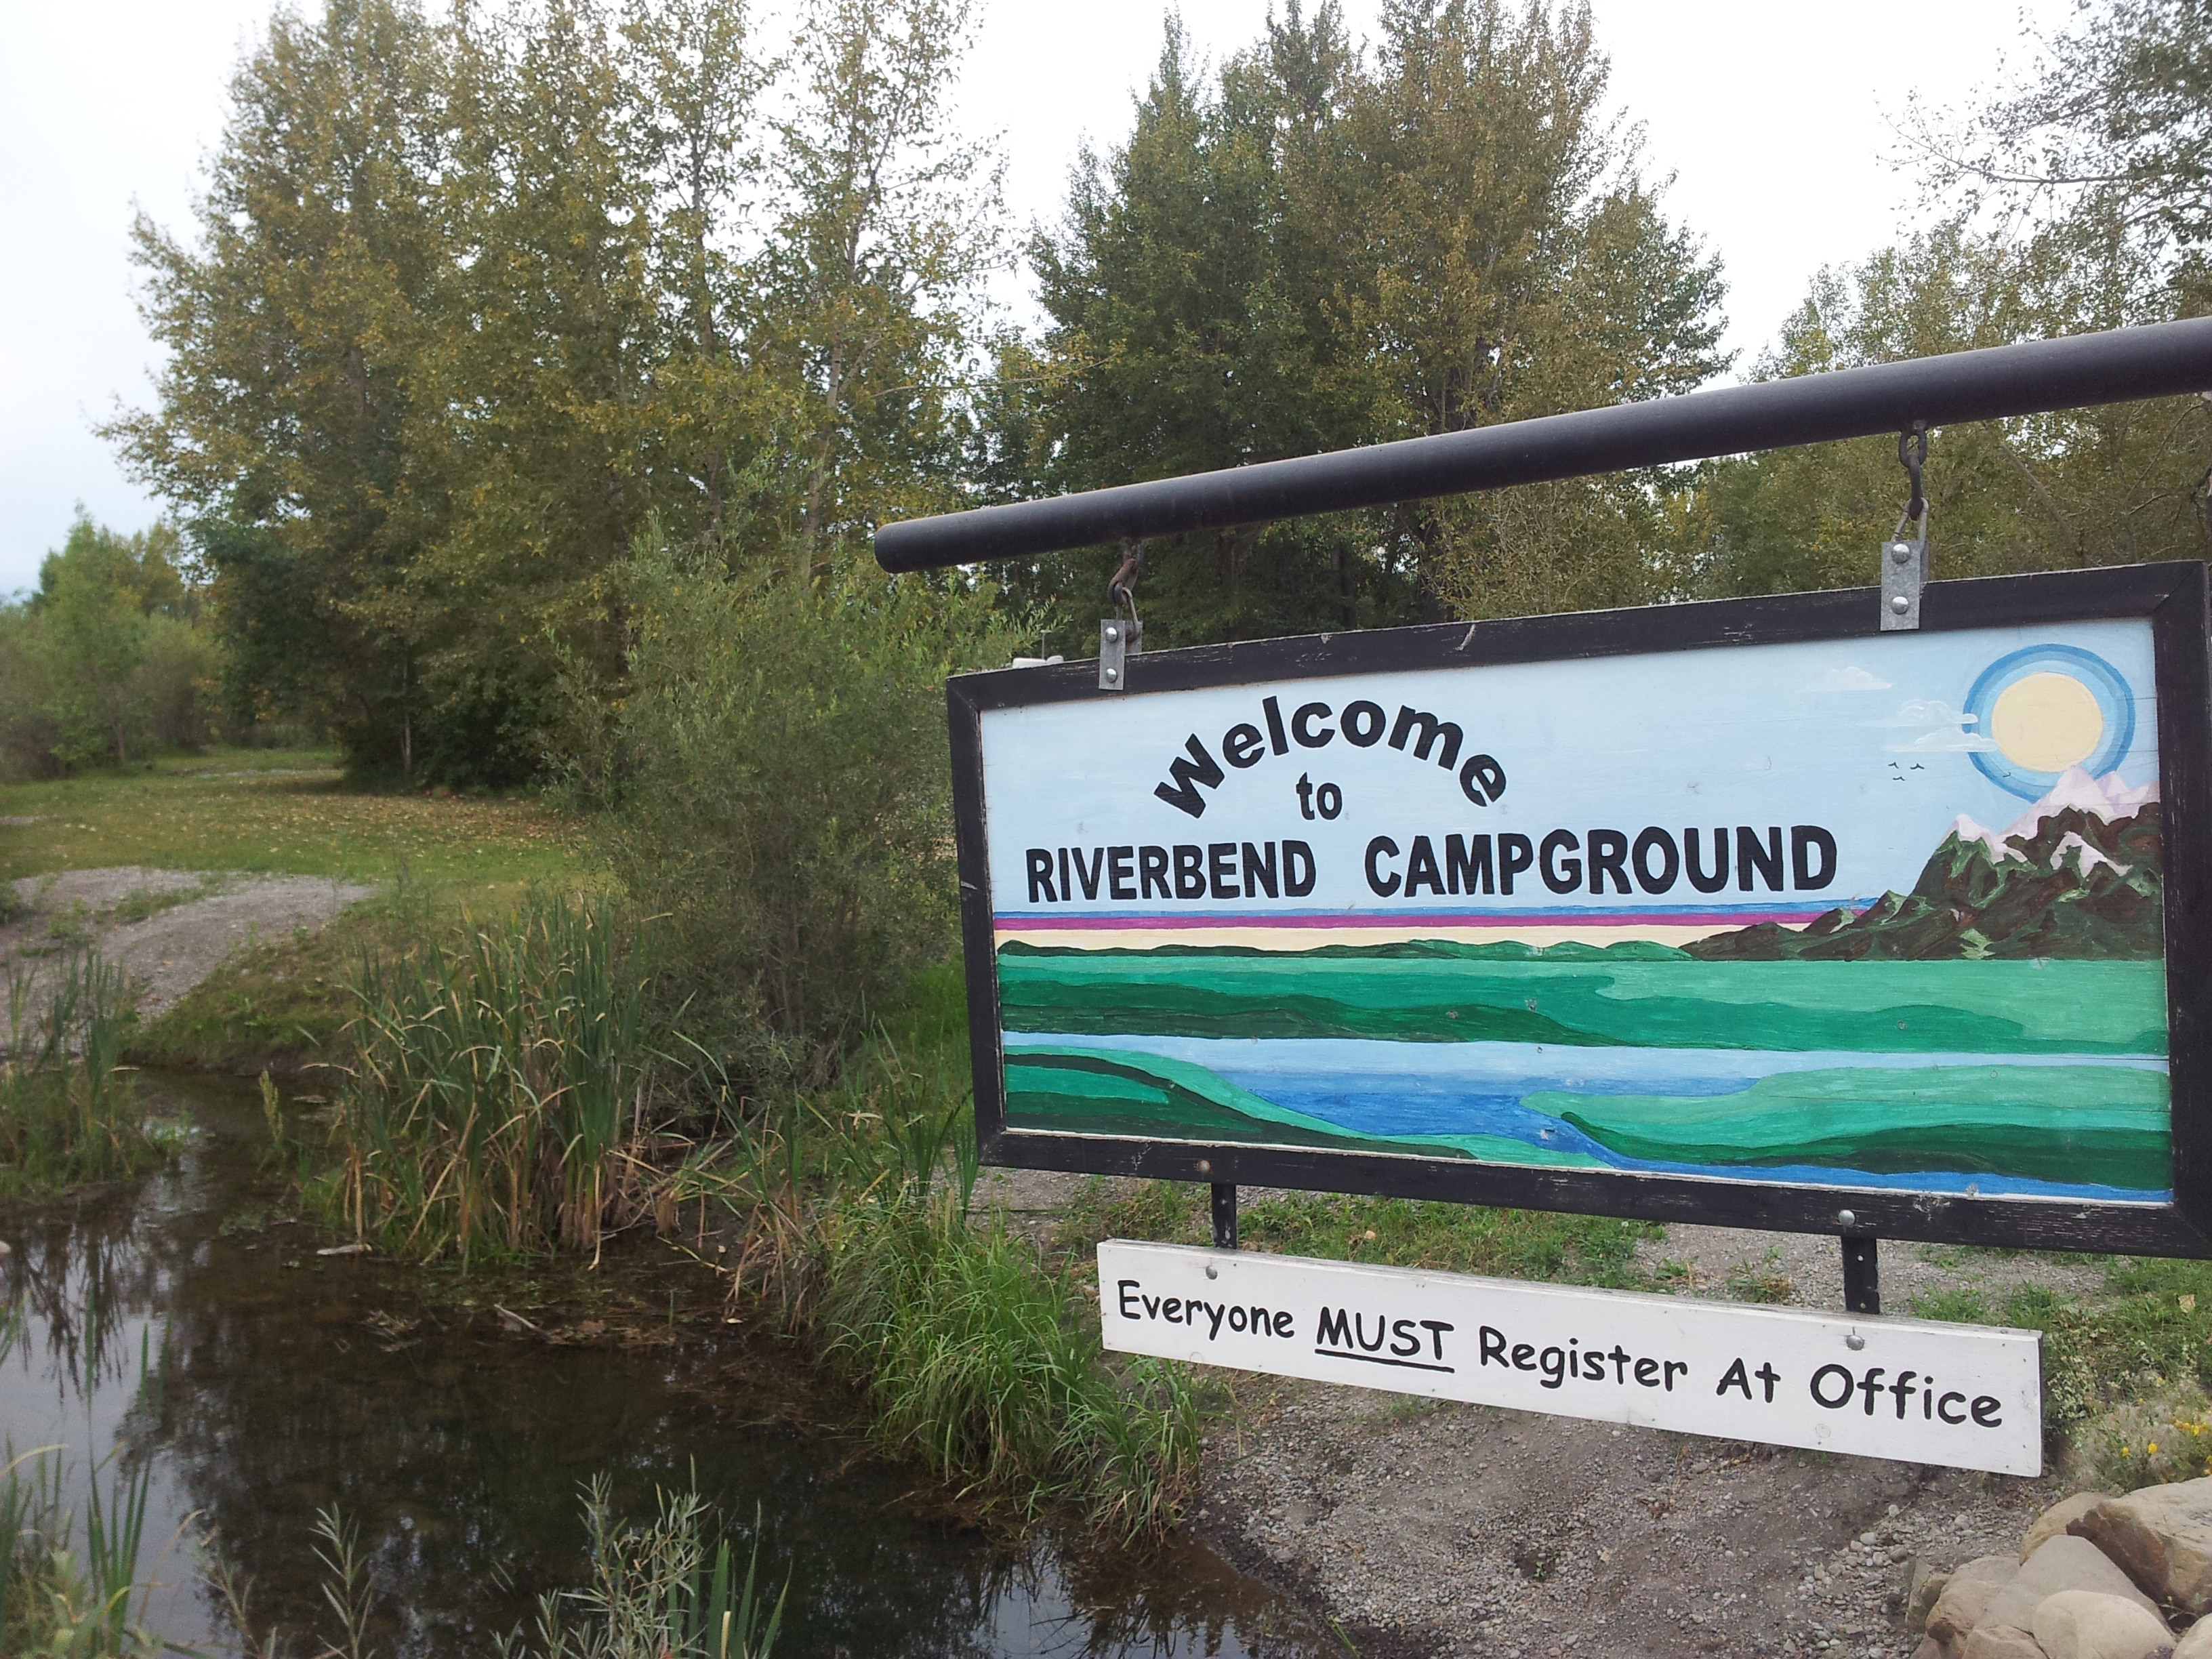 Welcome sign at entrance to Riverbend Campground, Okotoks, south of Calgary Alberta.